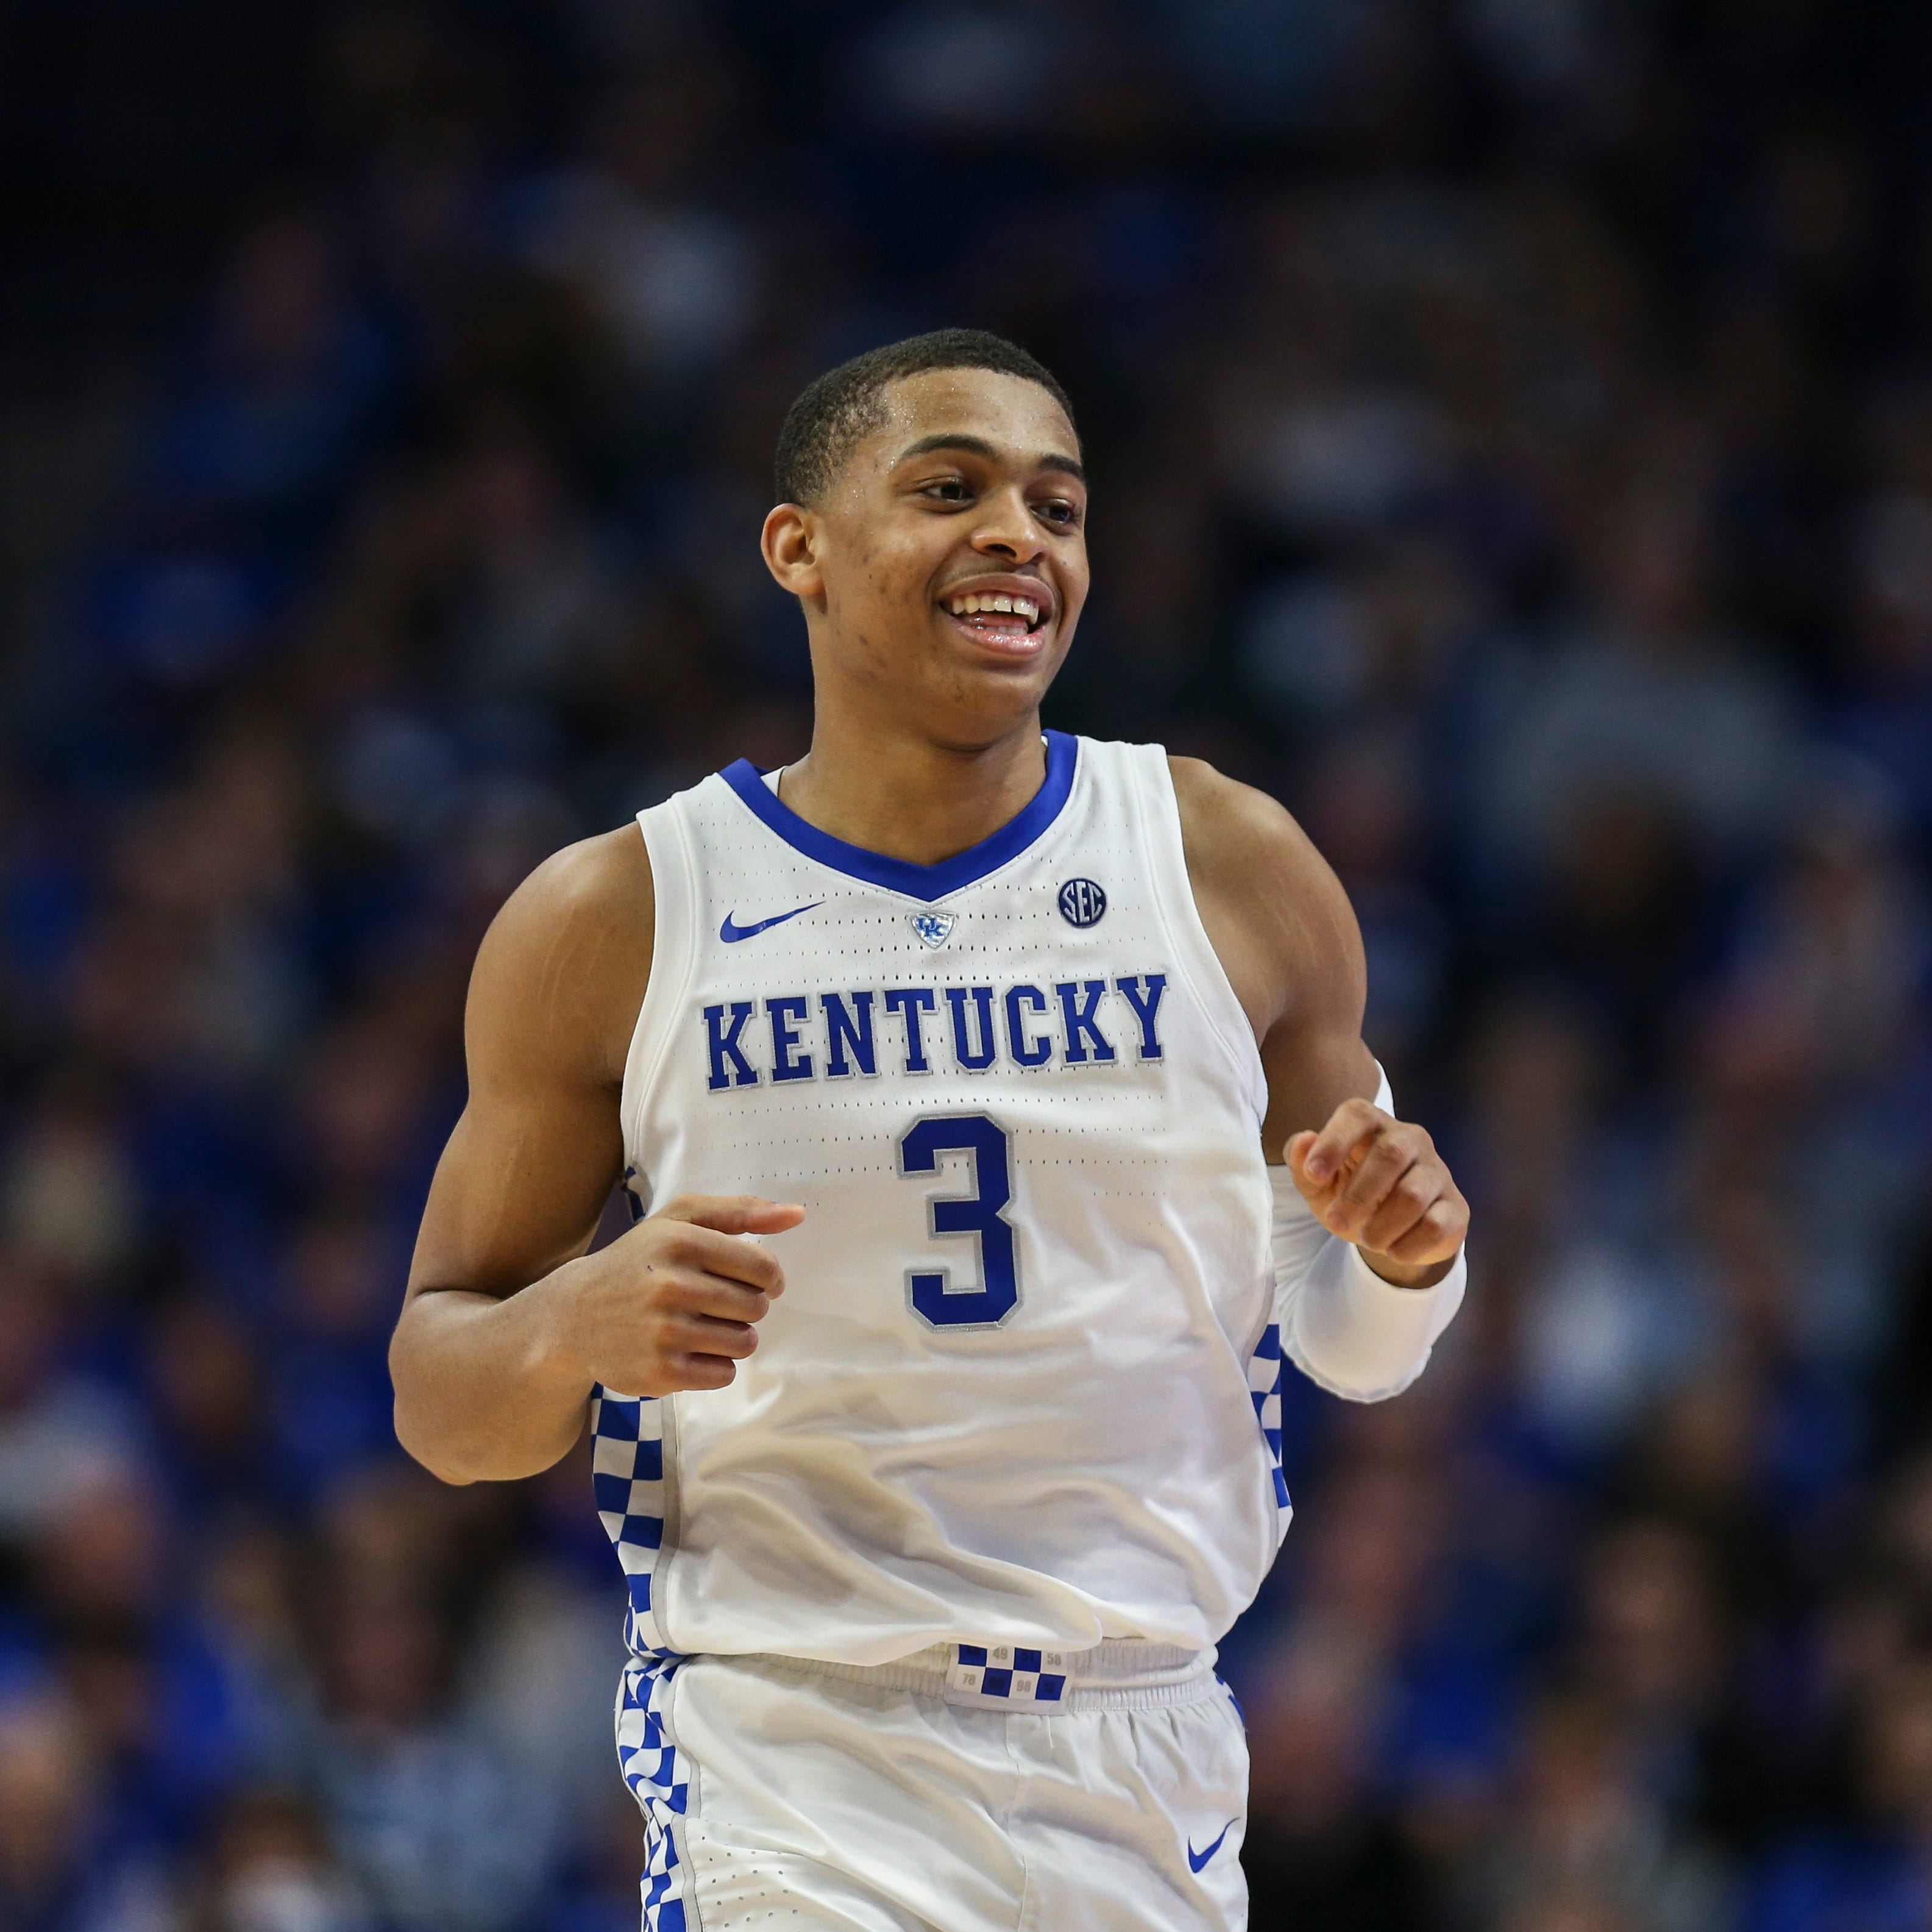 Former UK player Keldon Johnson rolls through Los Angeles in a $300,000 car